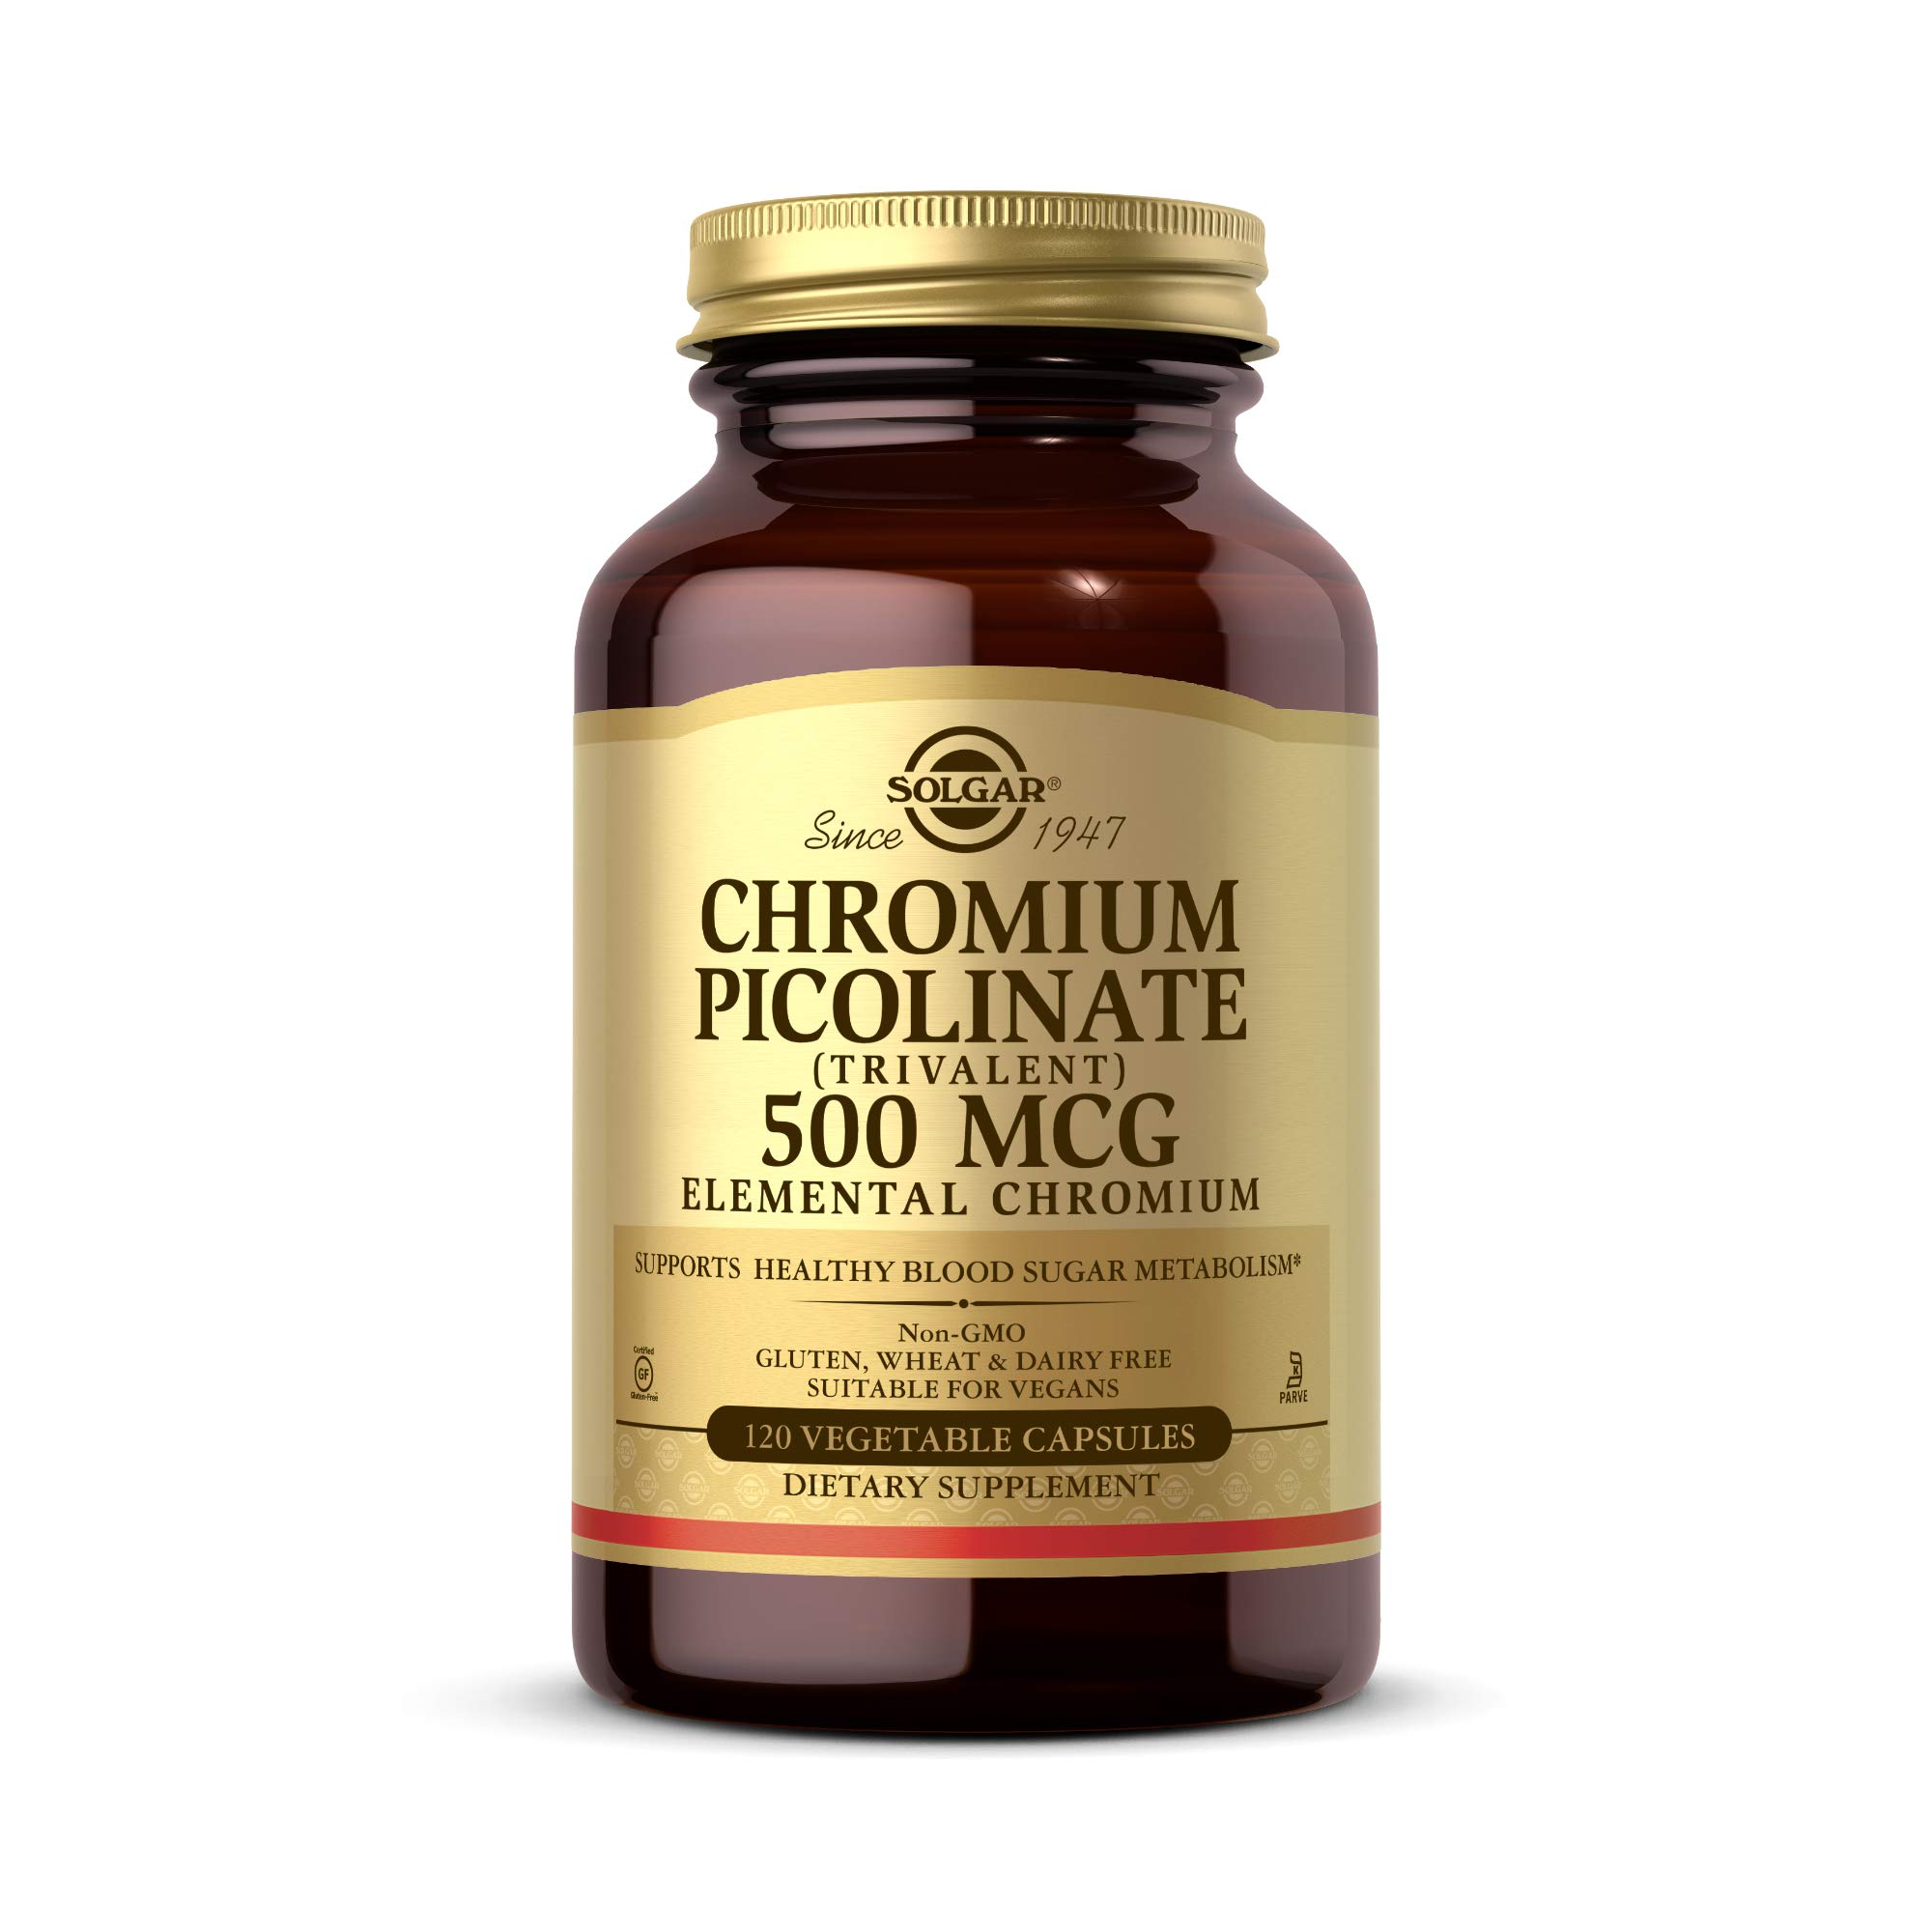 Solgar Chromium Picolinate 500 mcg, 120 Vegetable Capsules - Supports Energy - Supports Healthy Blood Sugar Metabolism - Vegan, Gluten Free, Dairy Free, Kosher - 120 Servings